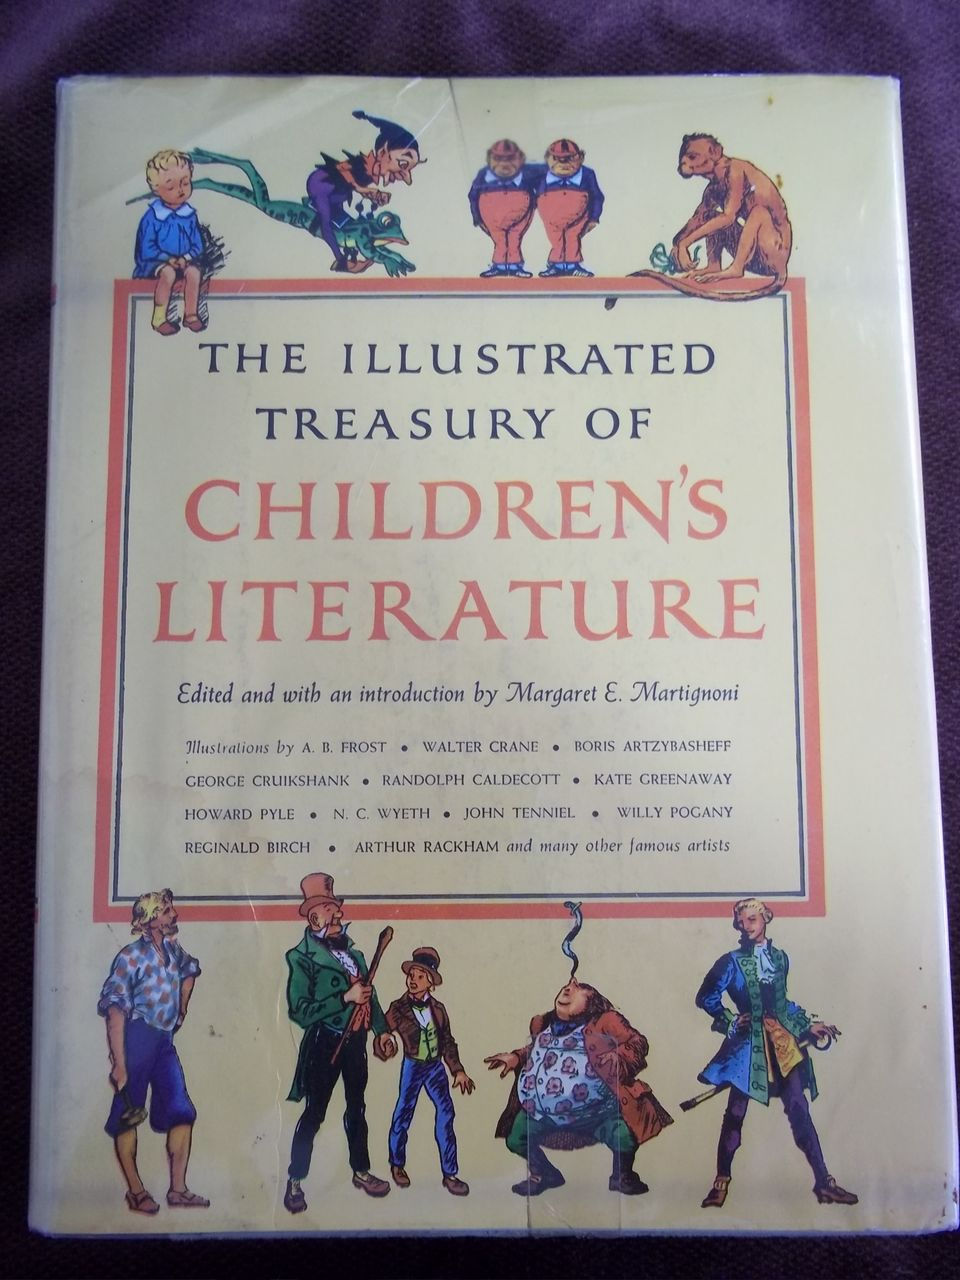 The Illustrated Treasury of Children's Literature, 1st Edition, Grosset and Dunlap 1955